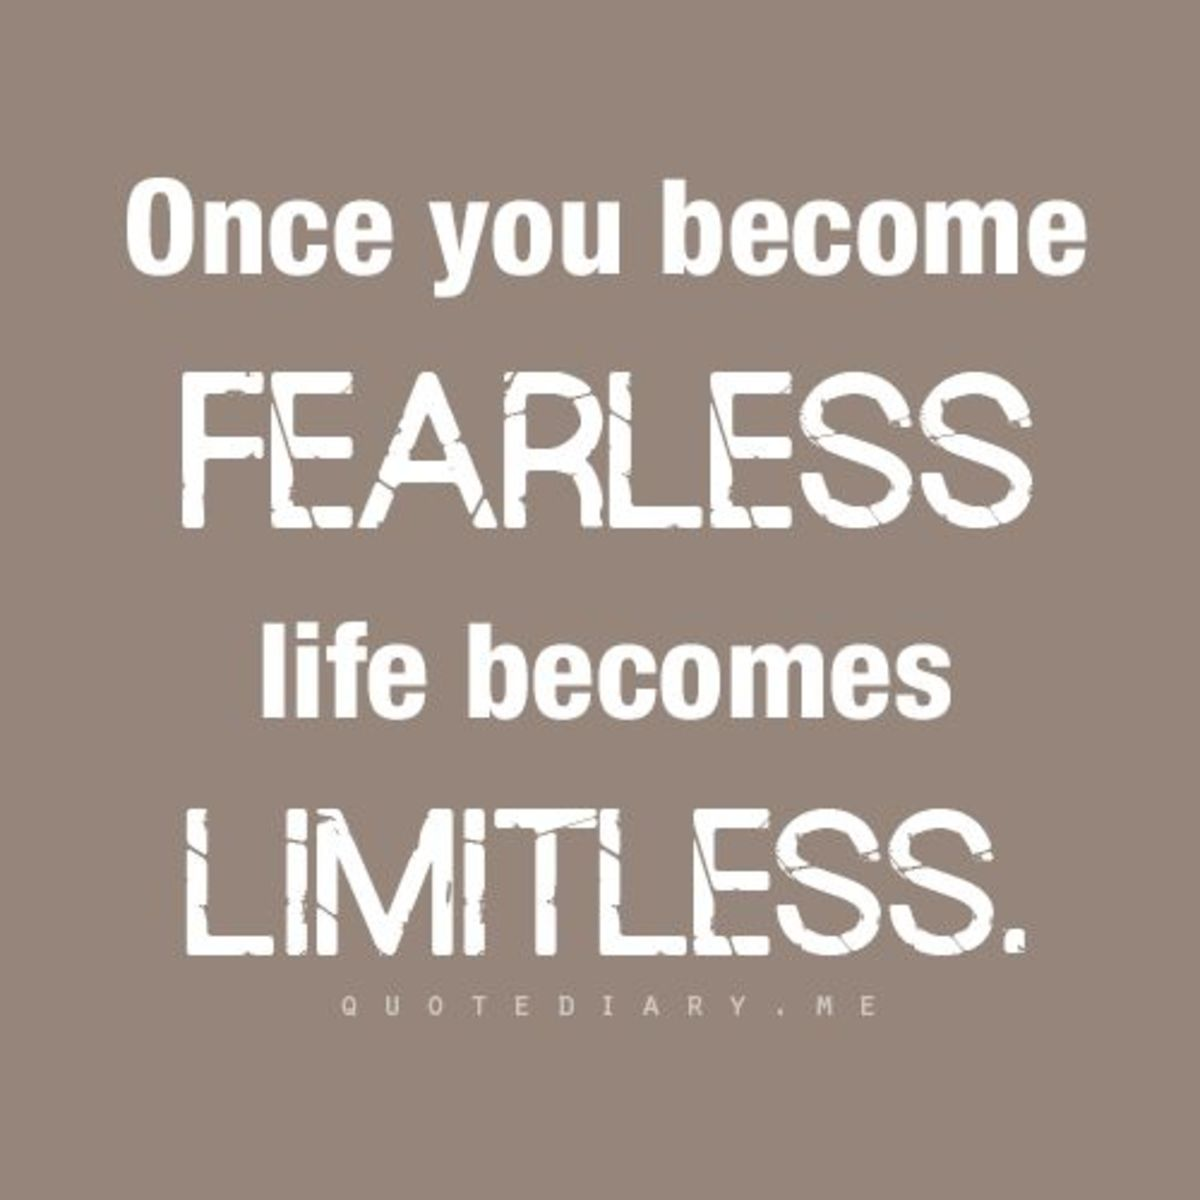 How Do You Live Limitlessly?